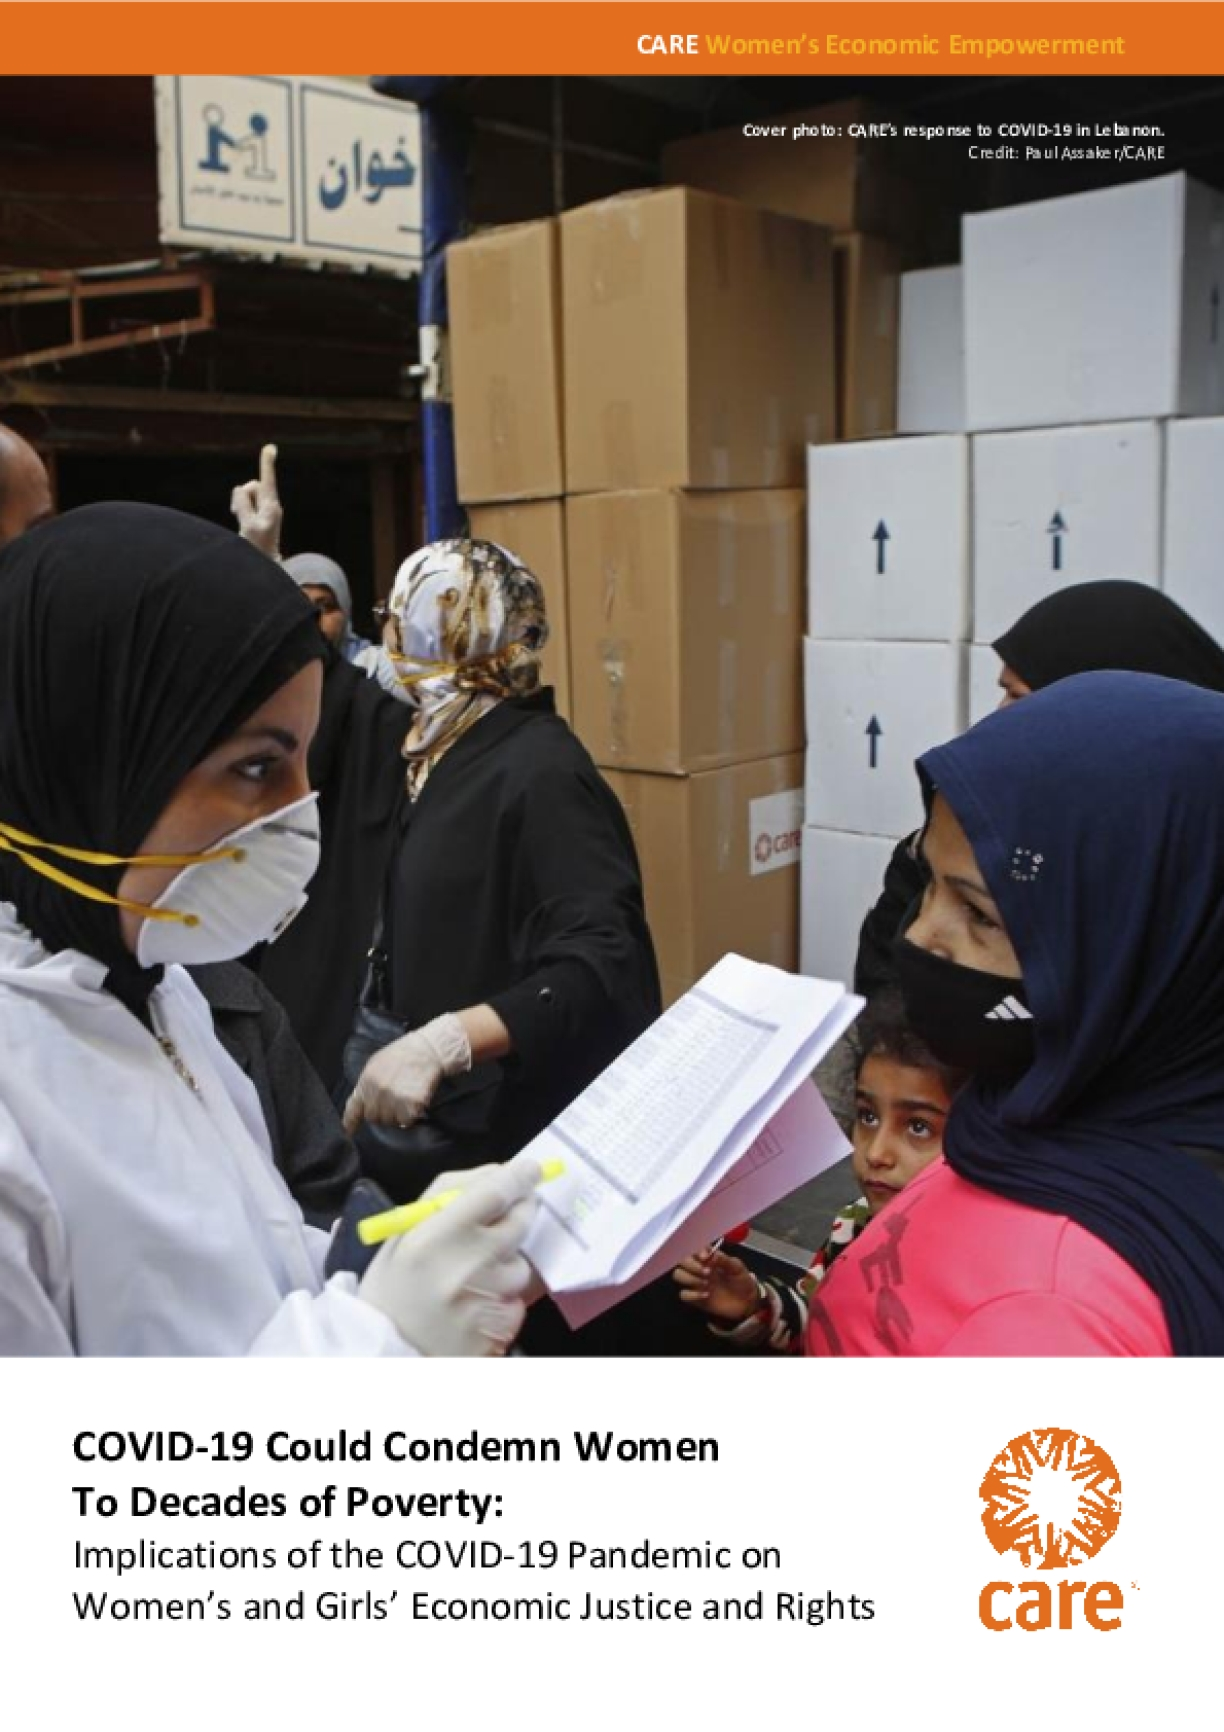 COVID-19 Could Condemn Women To Decades of Poverty: Implications of the COVID-19 Pandemic on Women's and Girls' Economic Justice and Rights